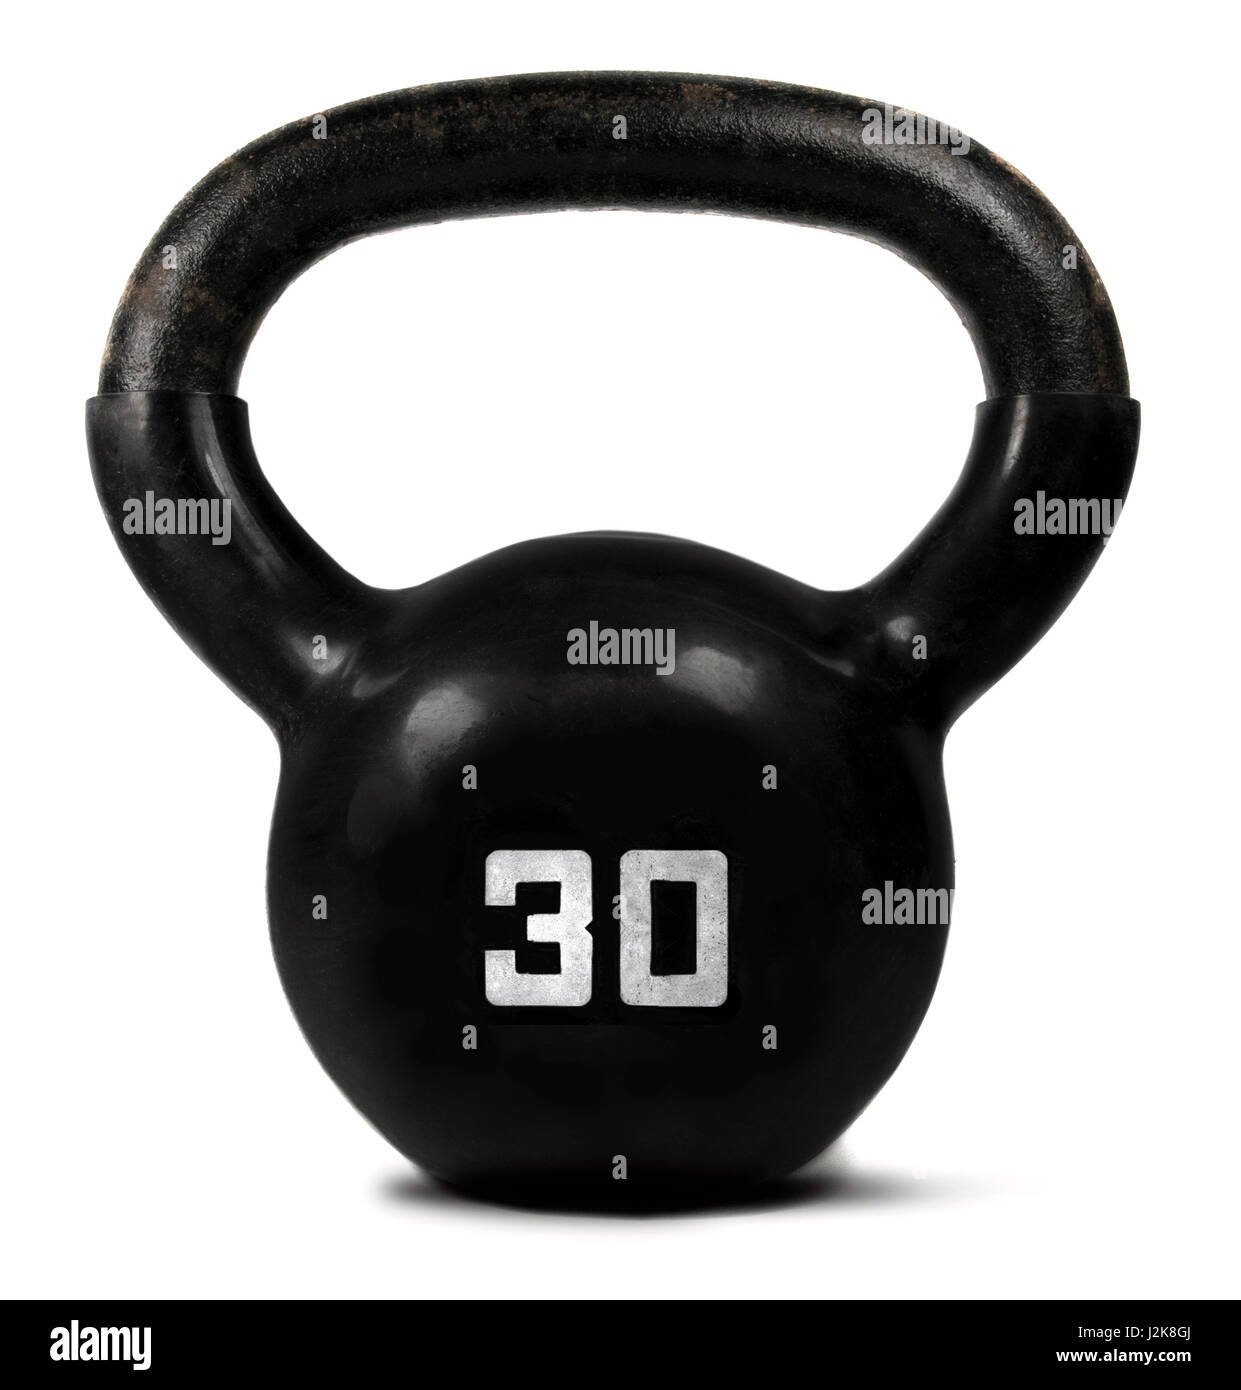 Black kettlebell weight on a white background. - Stock Image